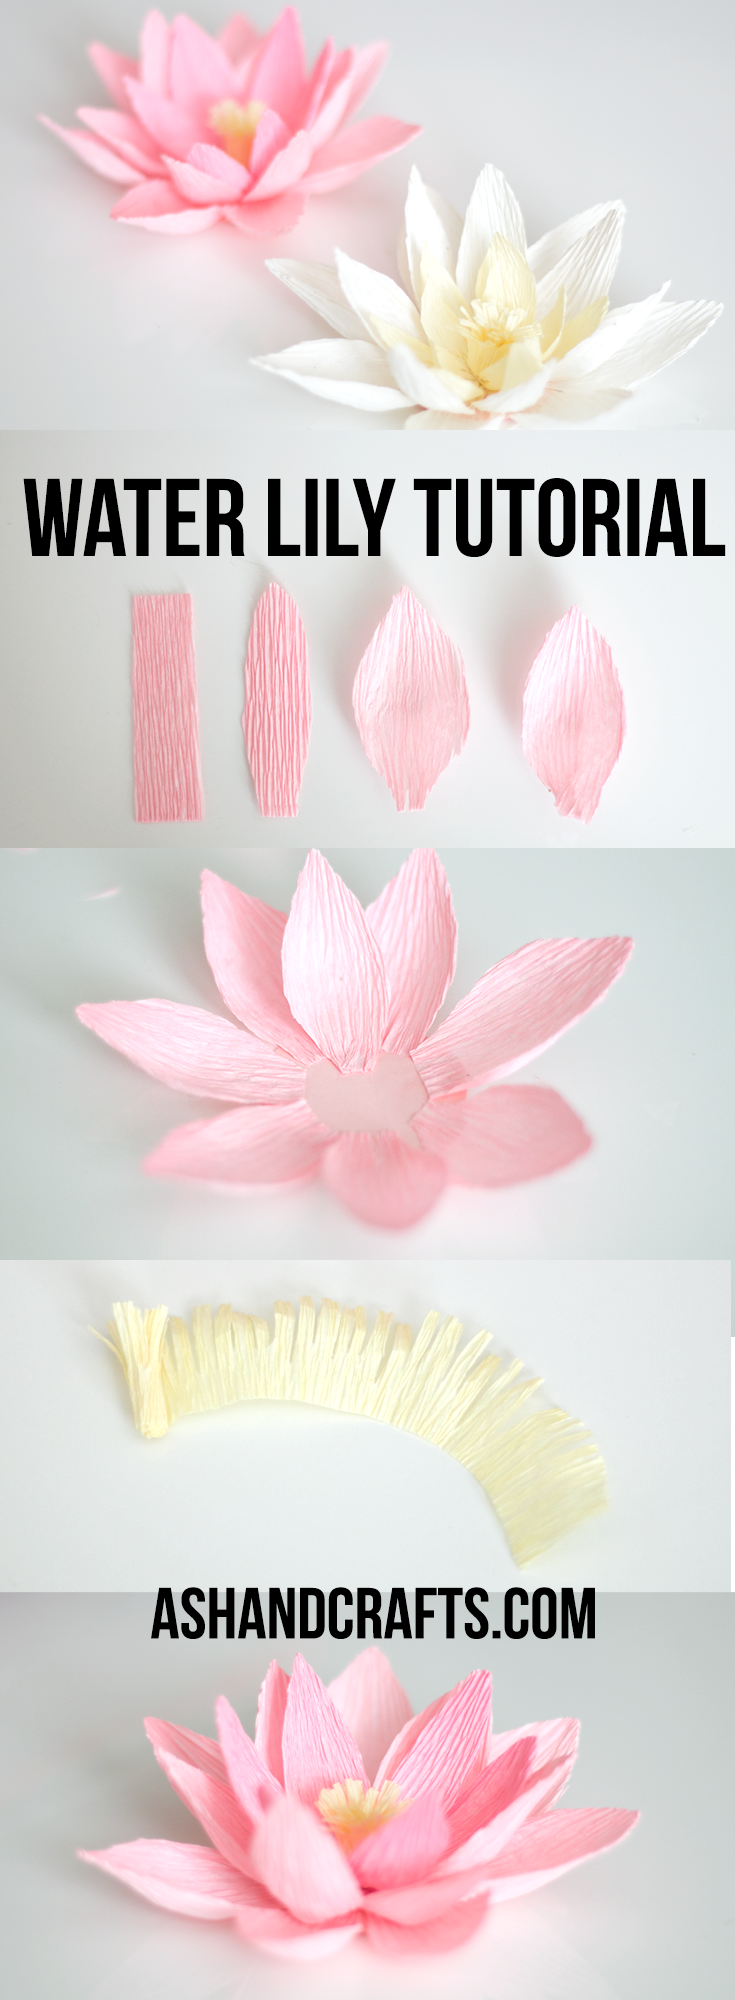 Crepe paper water lily ash and crafts crepe paper water lily tutorial ashandcrafts izmirmasajfo Gallery